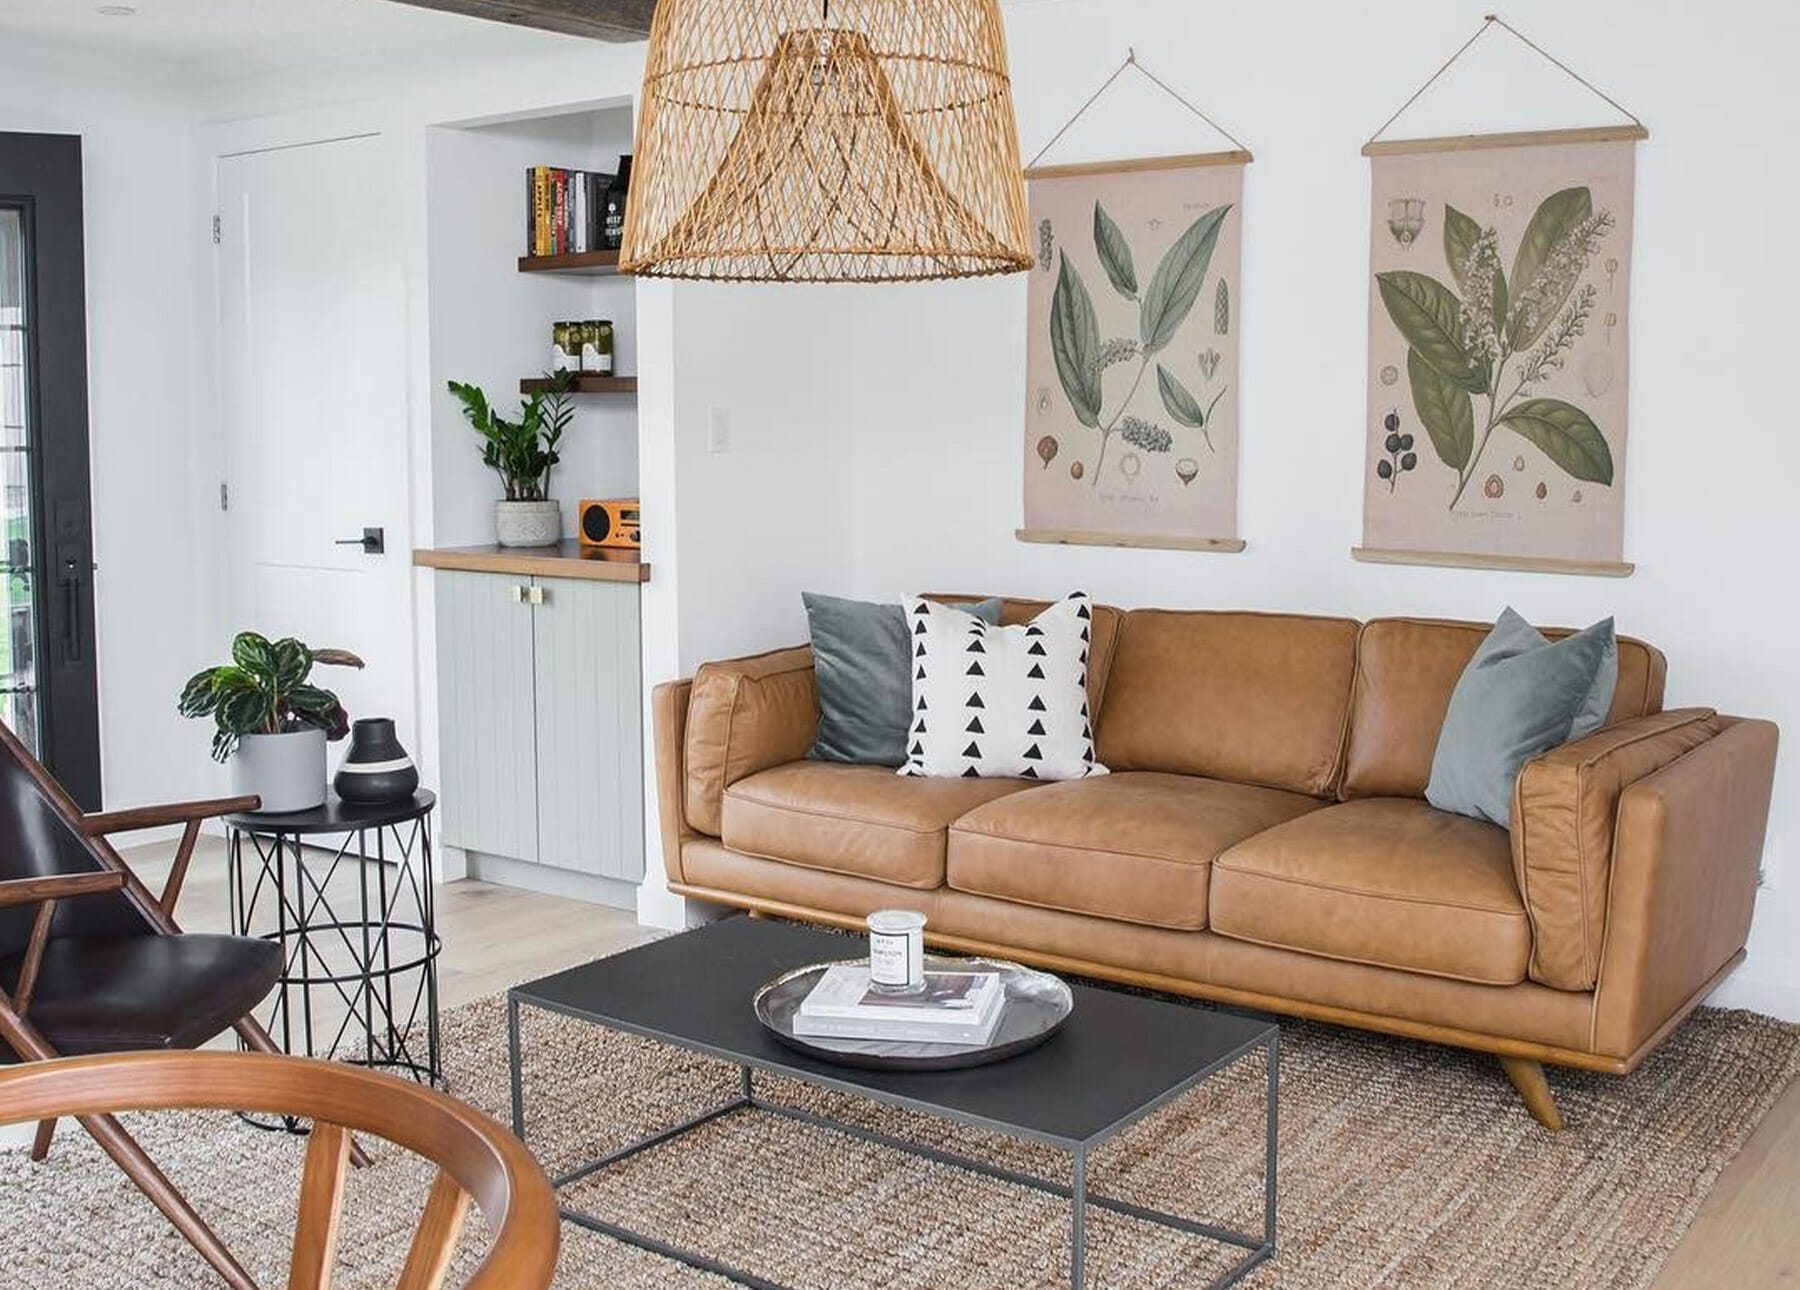 A living room features the Article leather Timber Sofa and botanical art prints.